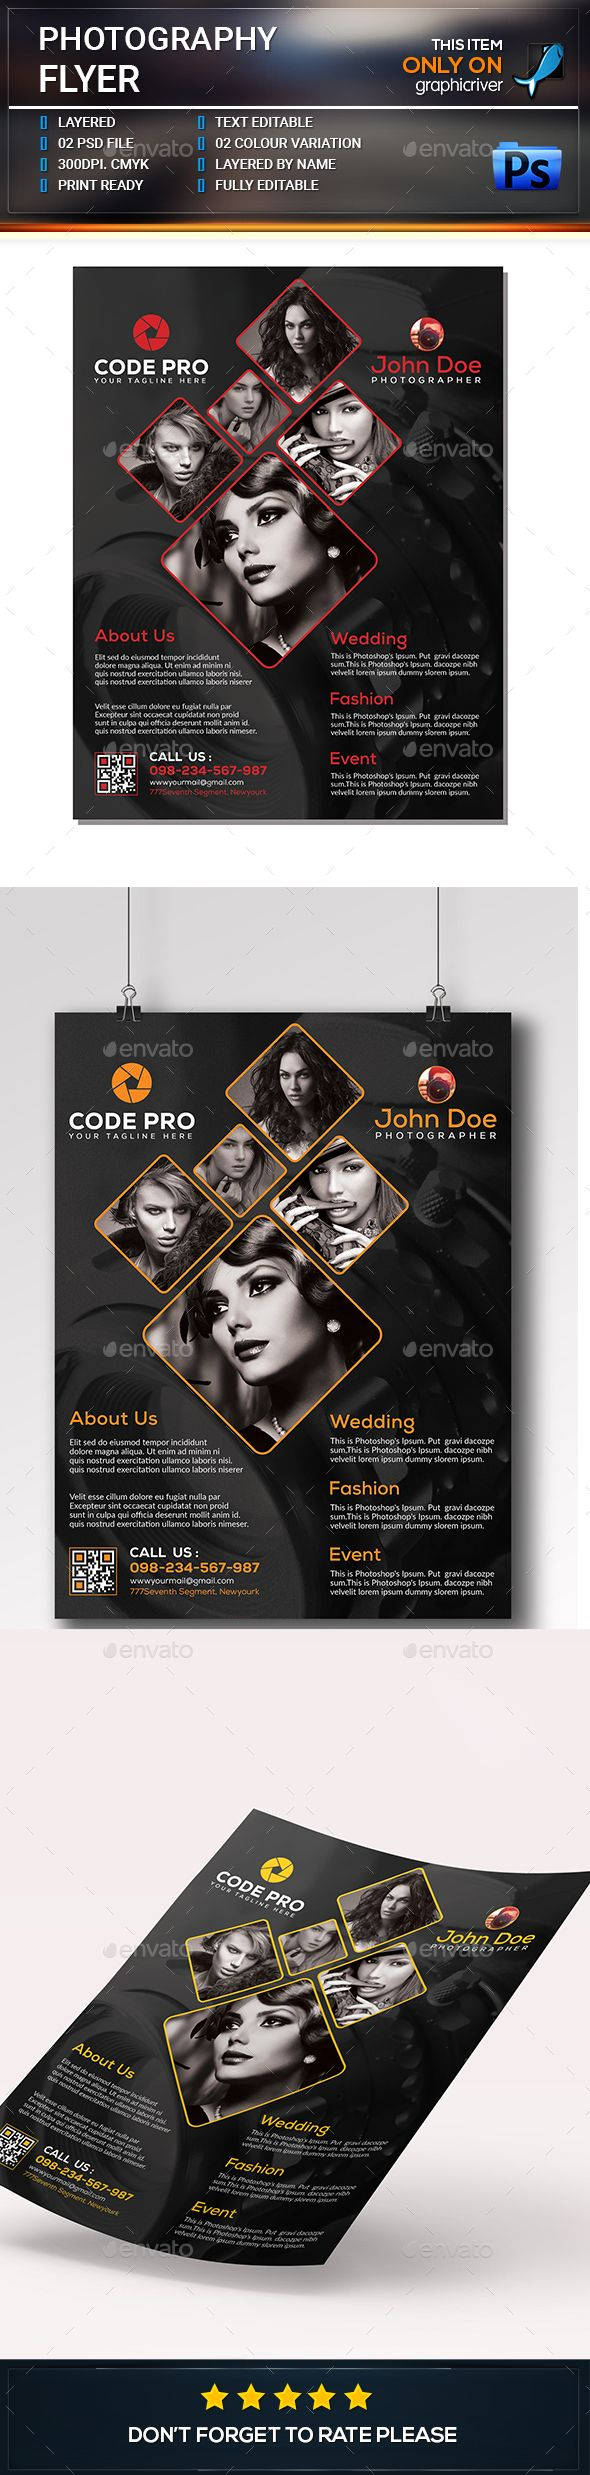 Photography Flyer Template PSD. Download here: https://graphicriver.net/item/photography-flyer/17224379?ref=ksioks